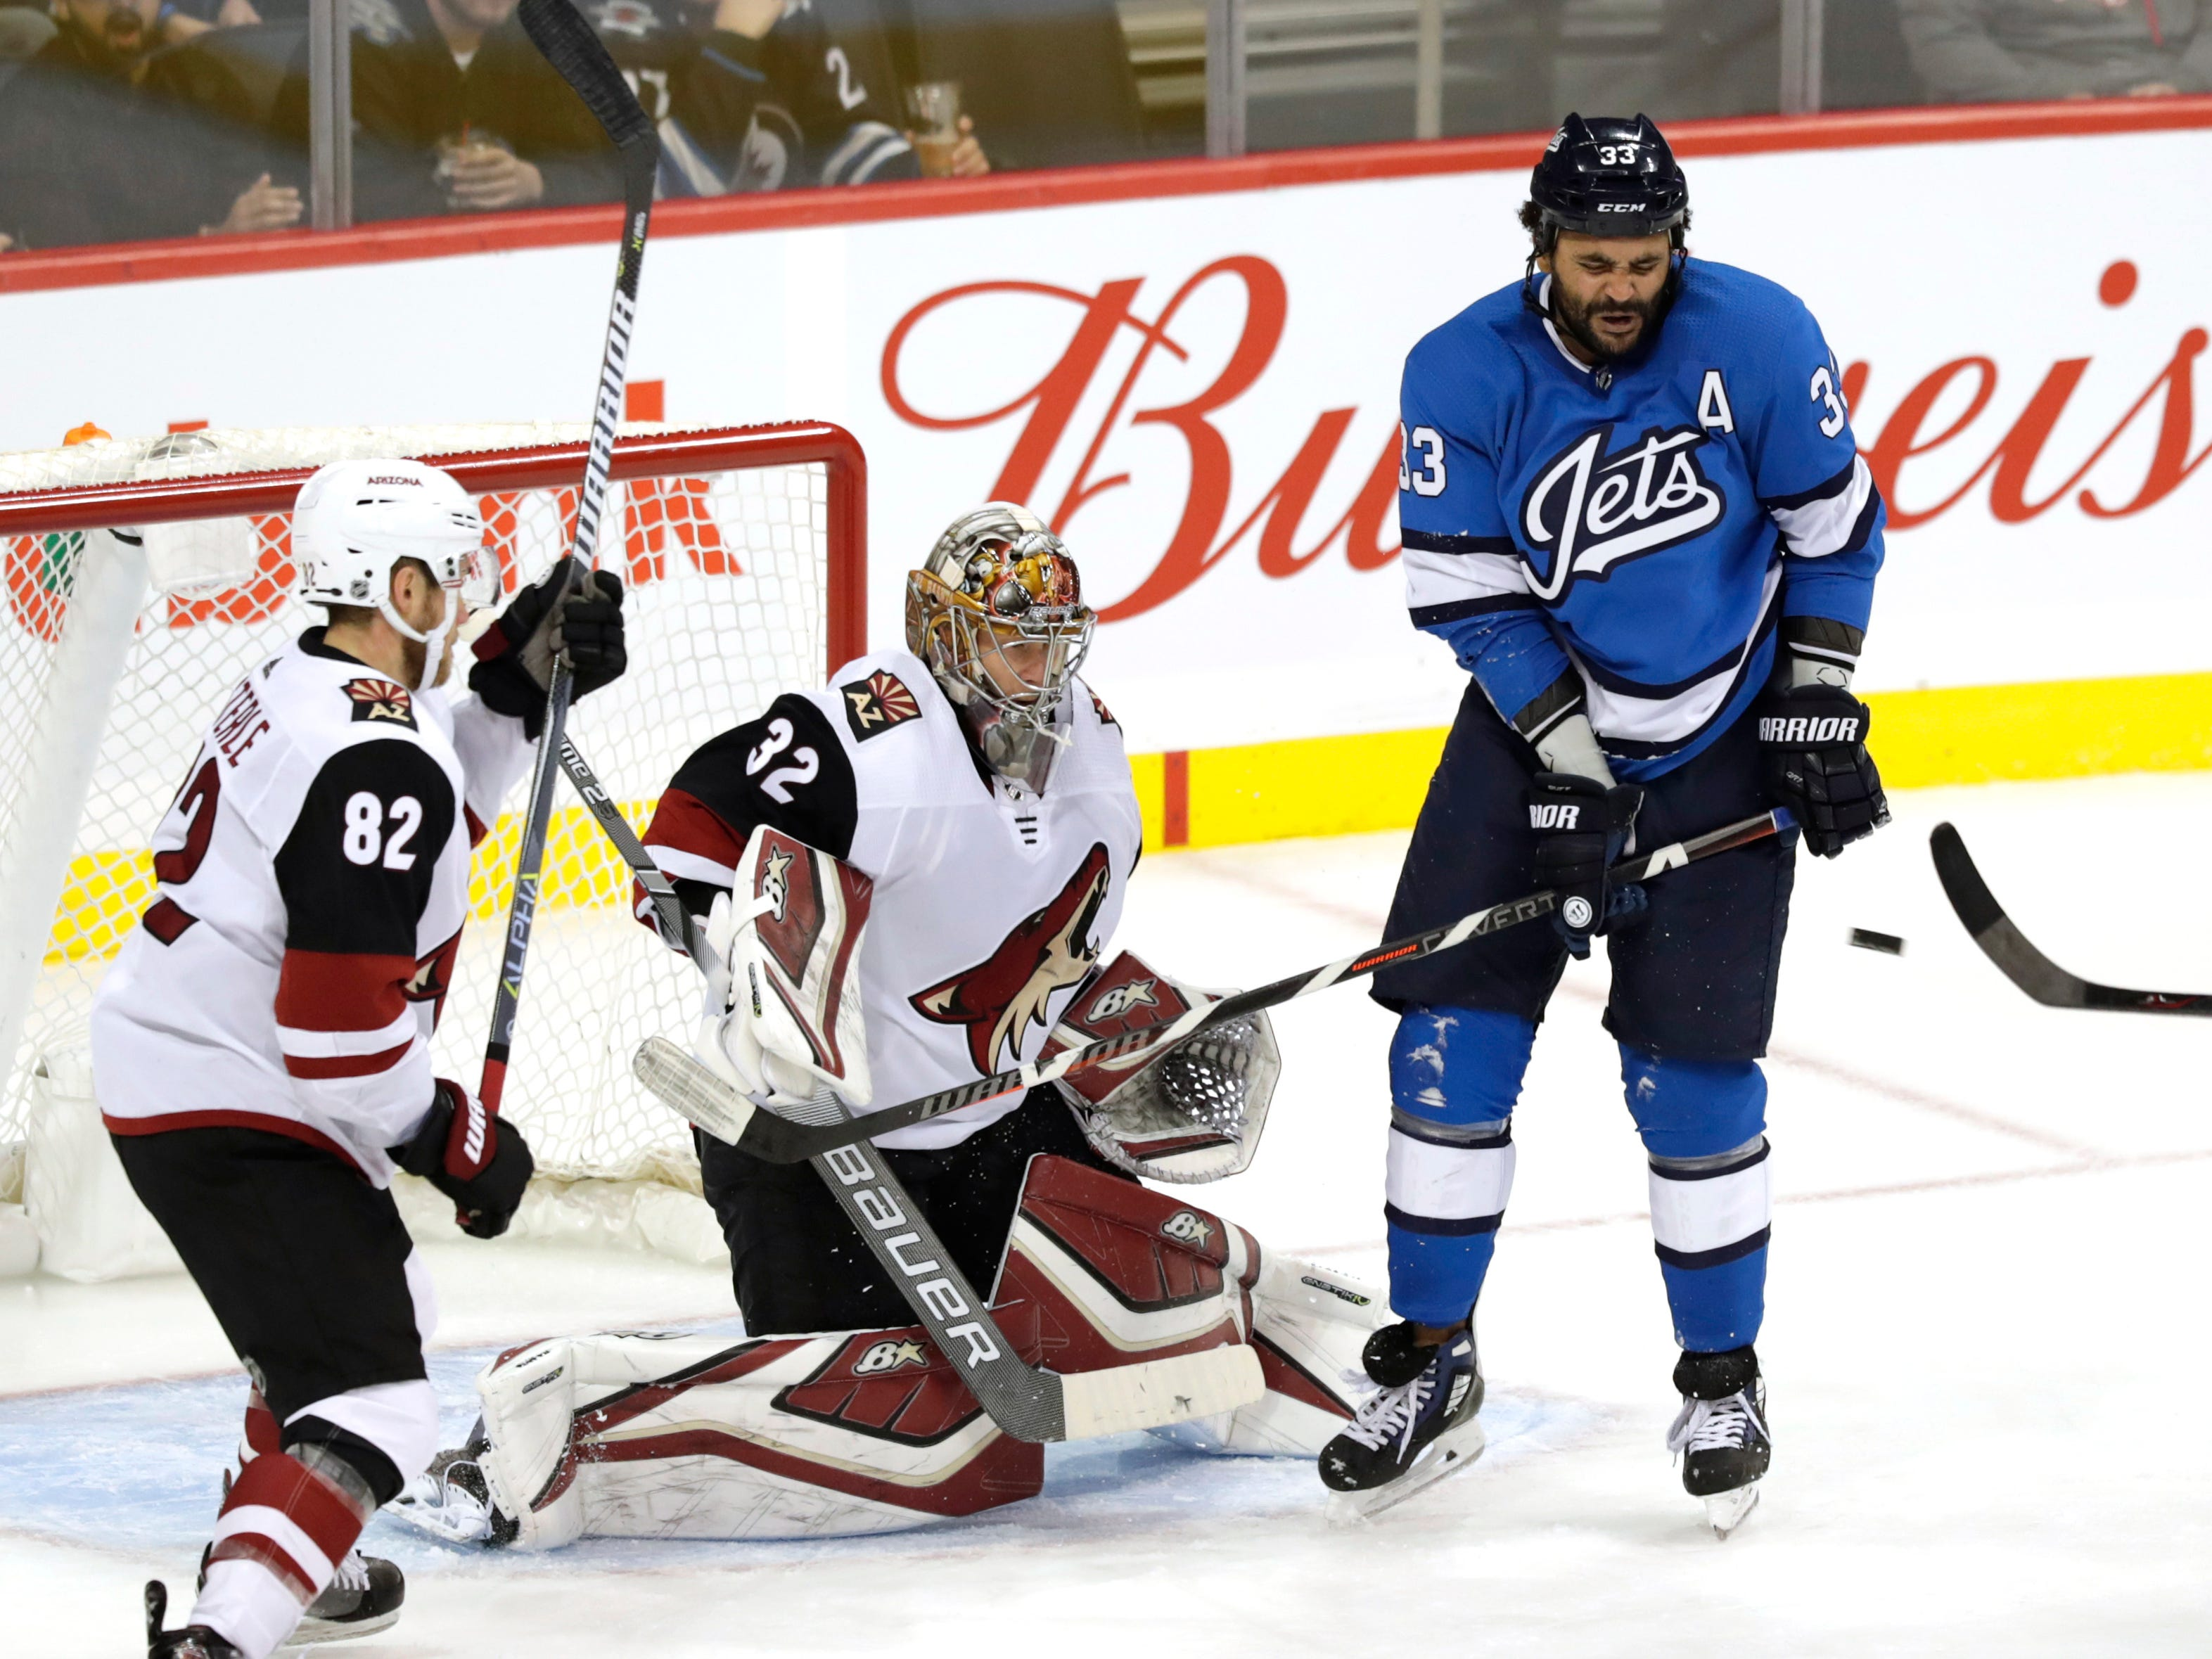 Oct 20, 2018; Winnipeg, Manitoba, CAN; Winnipeg Jets defenseman Dustin Byfuglien (33) screens Arizona Coyotes goaltender Antti Raanta (32) in the first period at Bell MTS Place. Mandatory Credit: James Carey Lauder-USA TODAY Sports